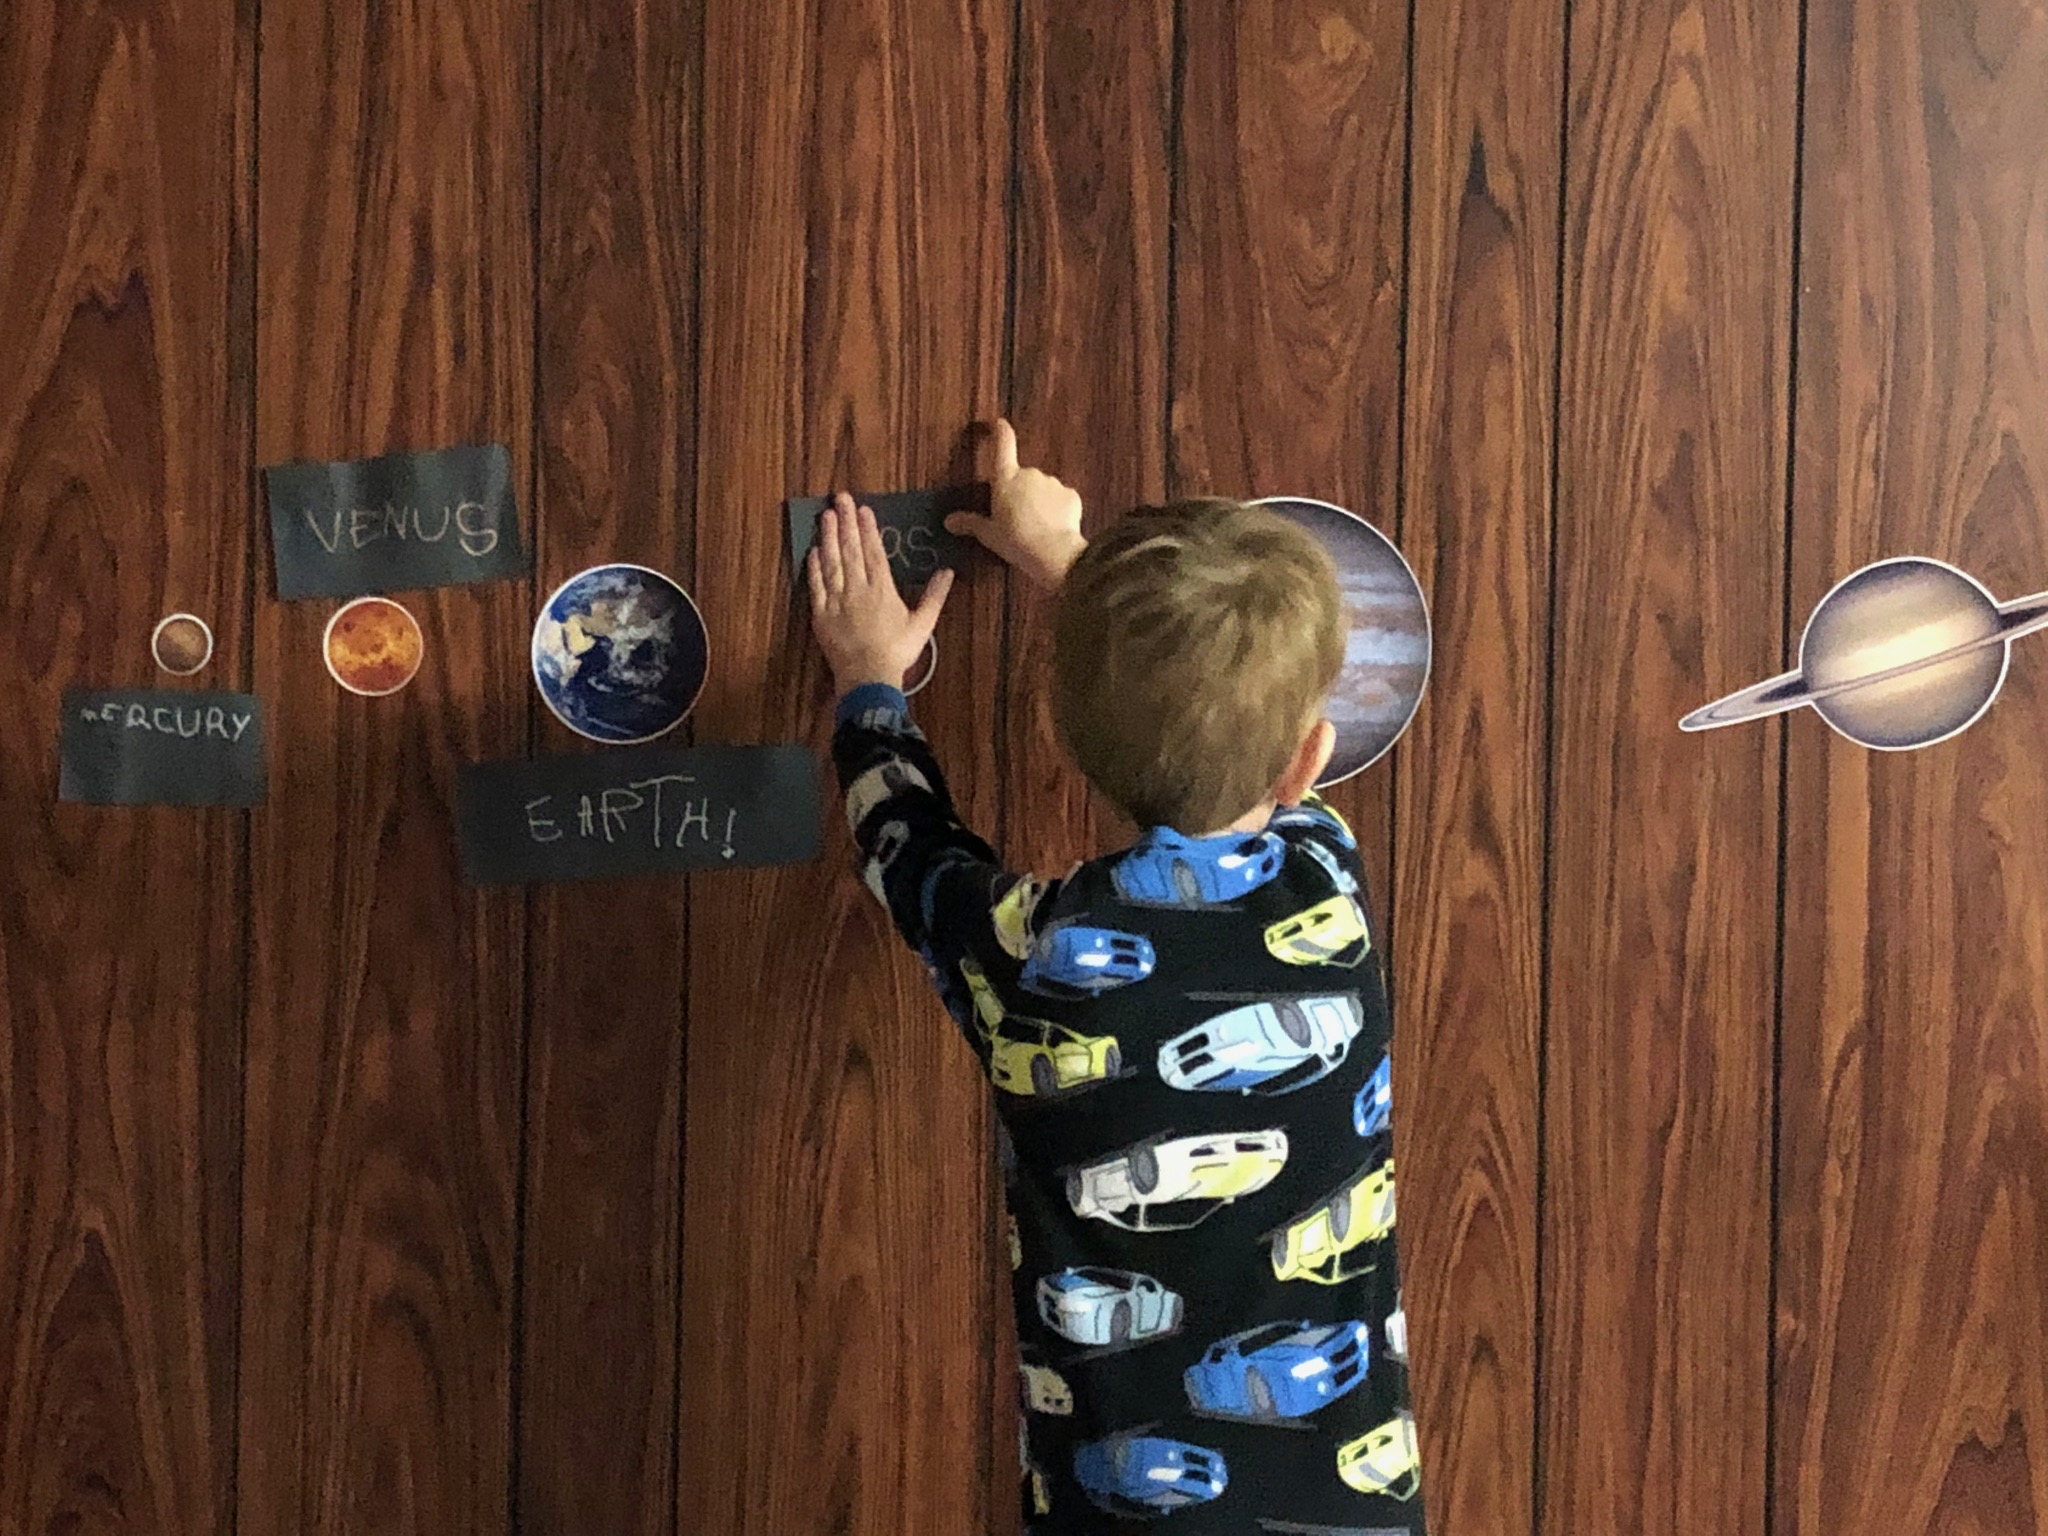 A young boy is sticking a black label for Mars up on a wall. Planet wall stickers and labels can be seen for Mercury, Venus and Earth